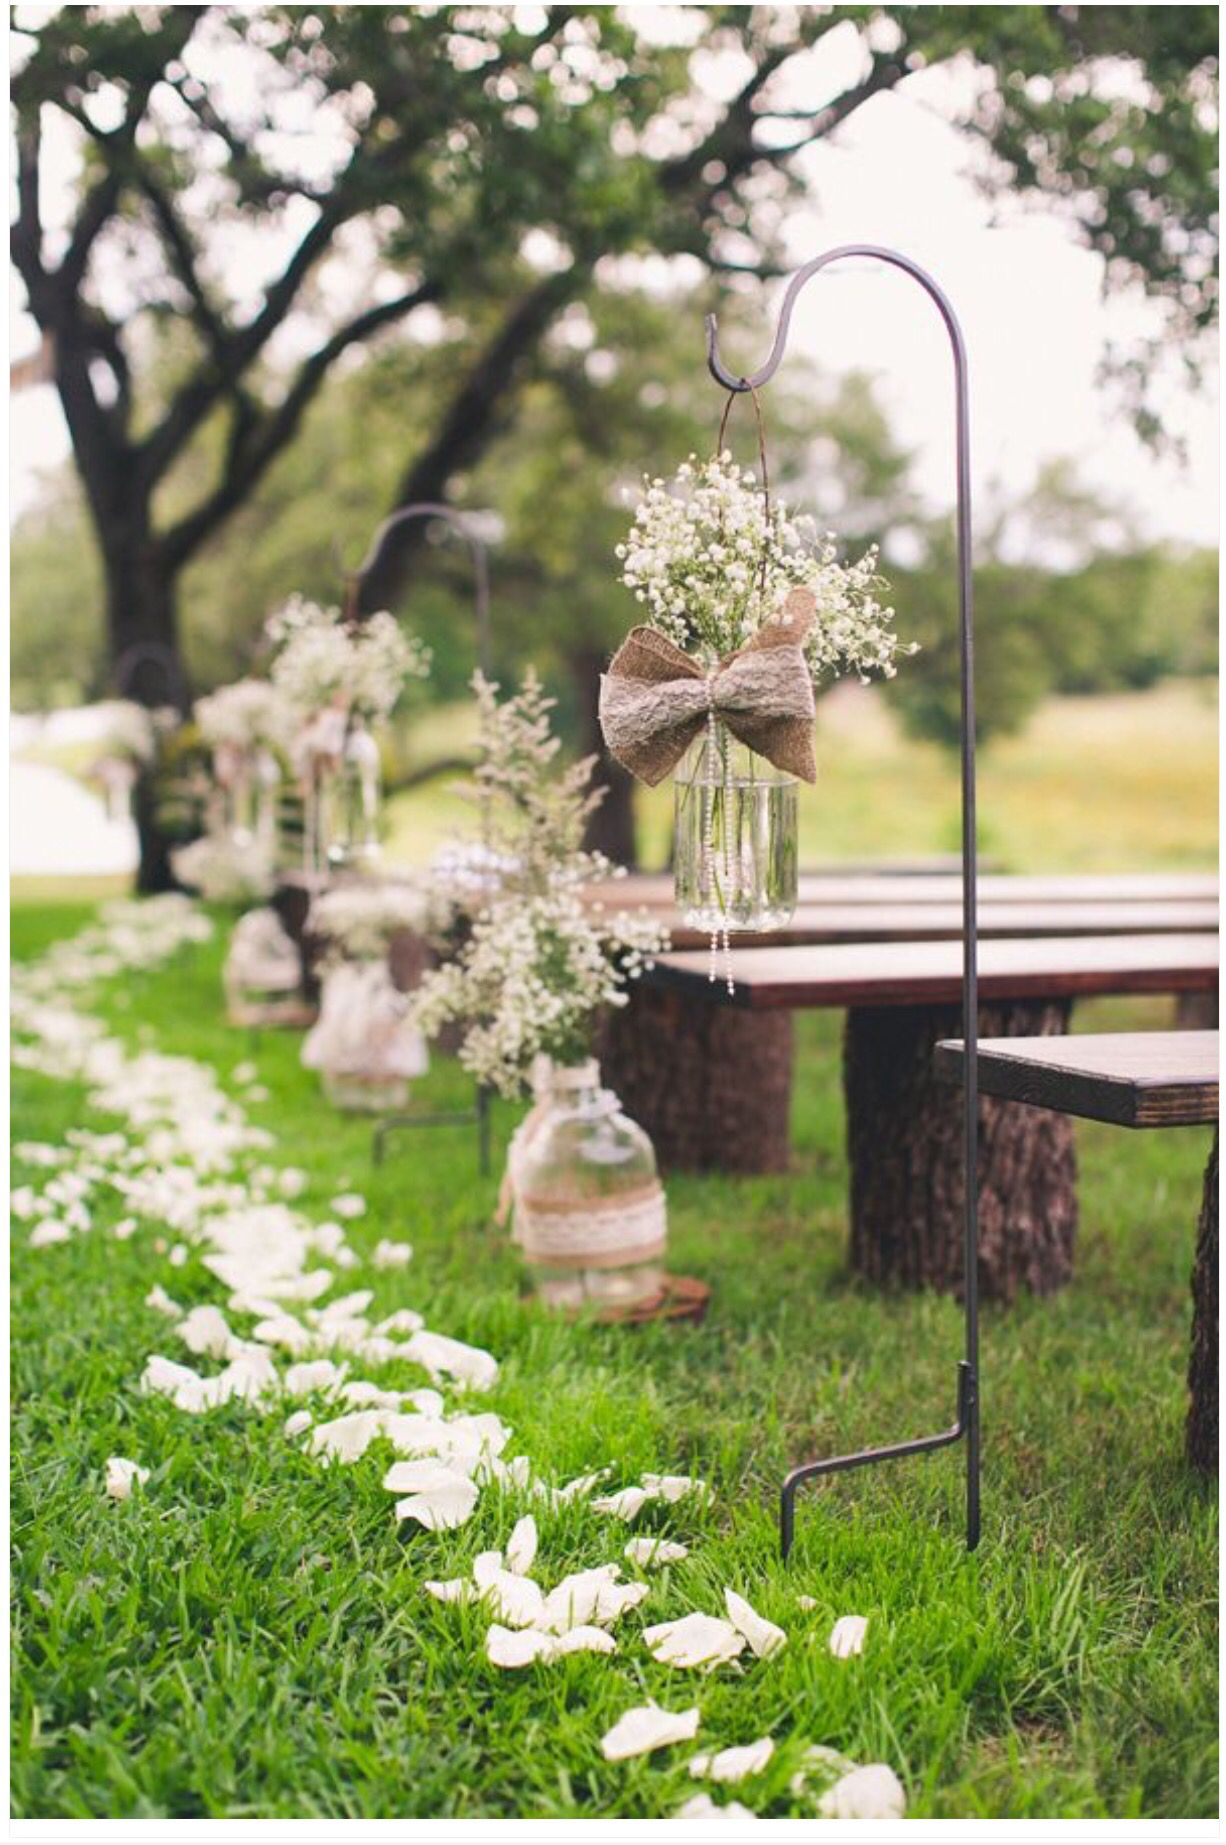 pinterest white hanging by on wild save ideas flower backyard decorations view daisy about decor pin giorgia wedding and